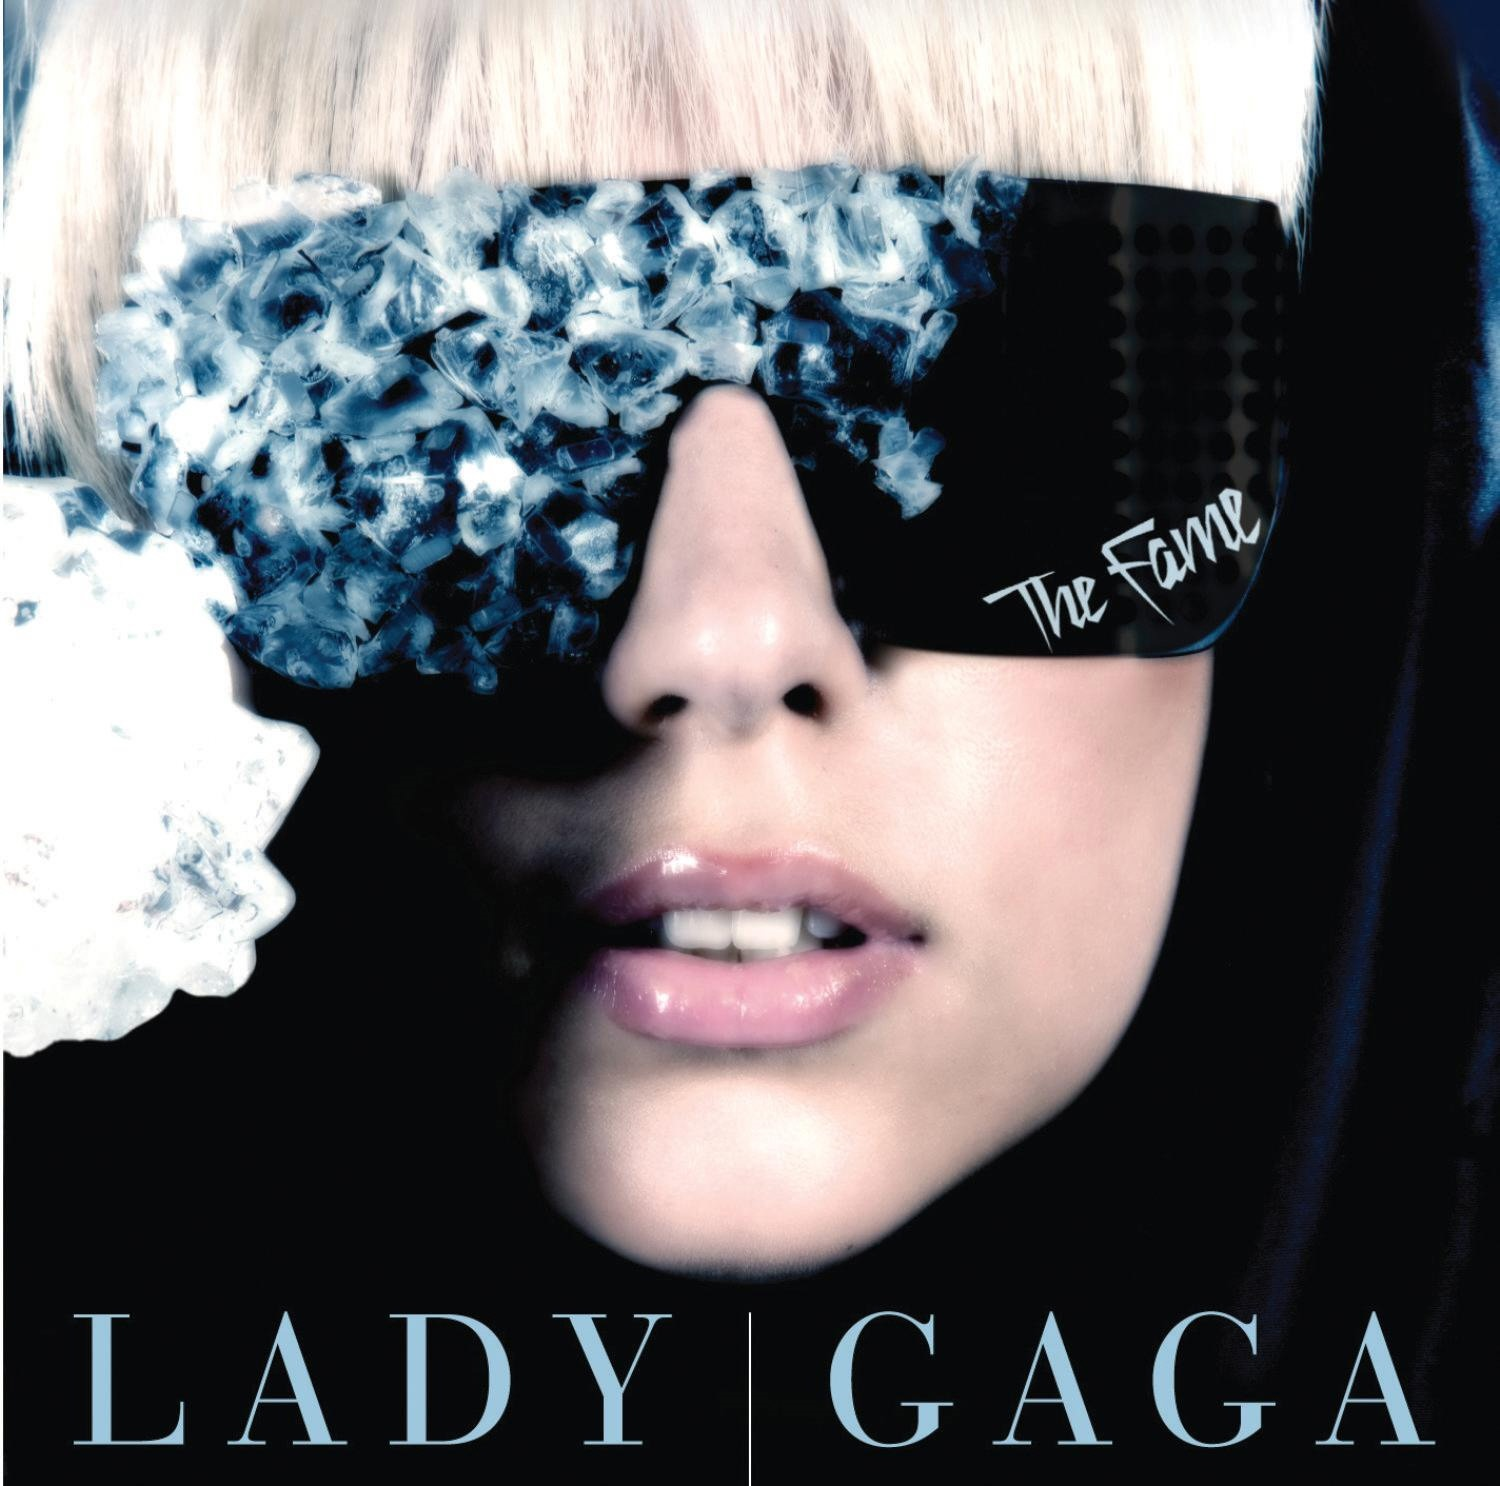 Assortment of Lady Gaga covers